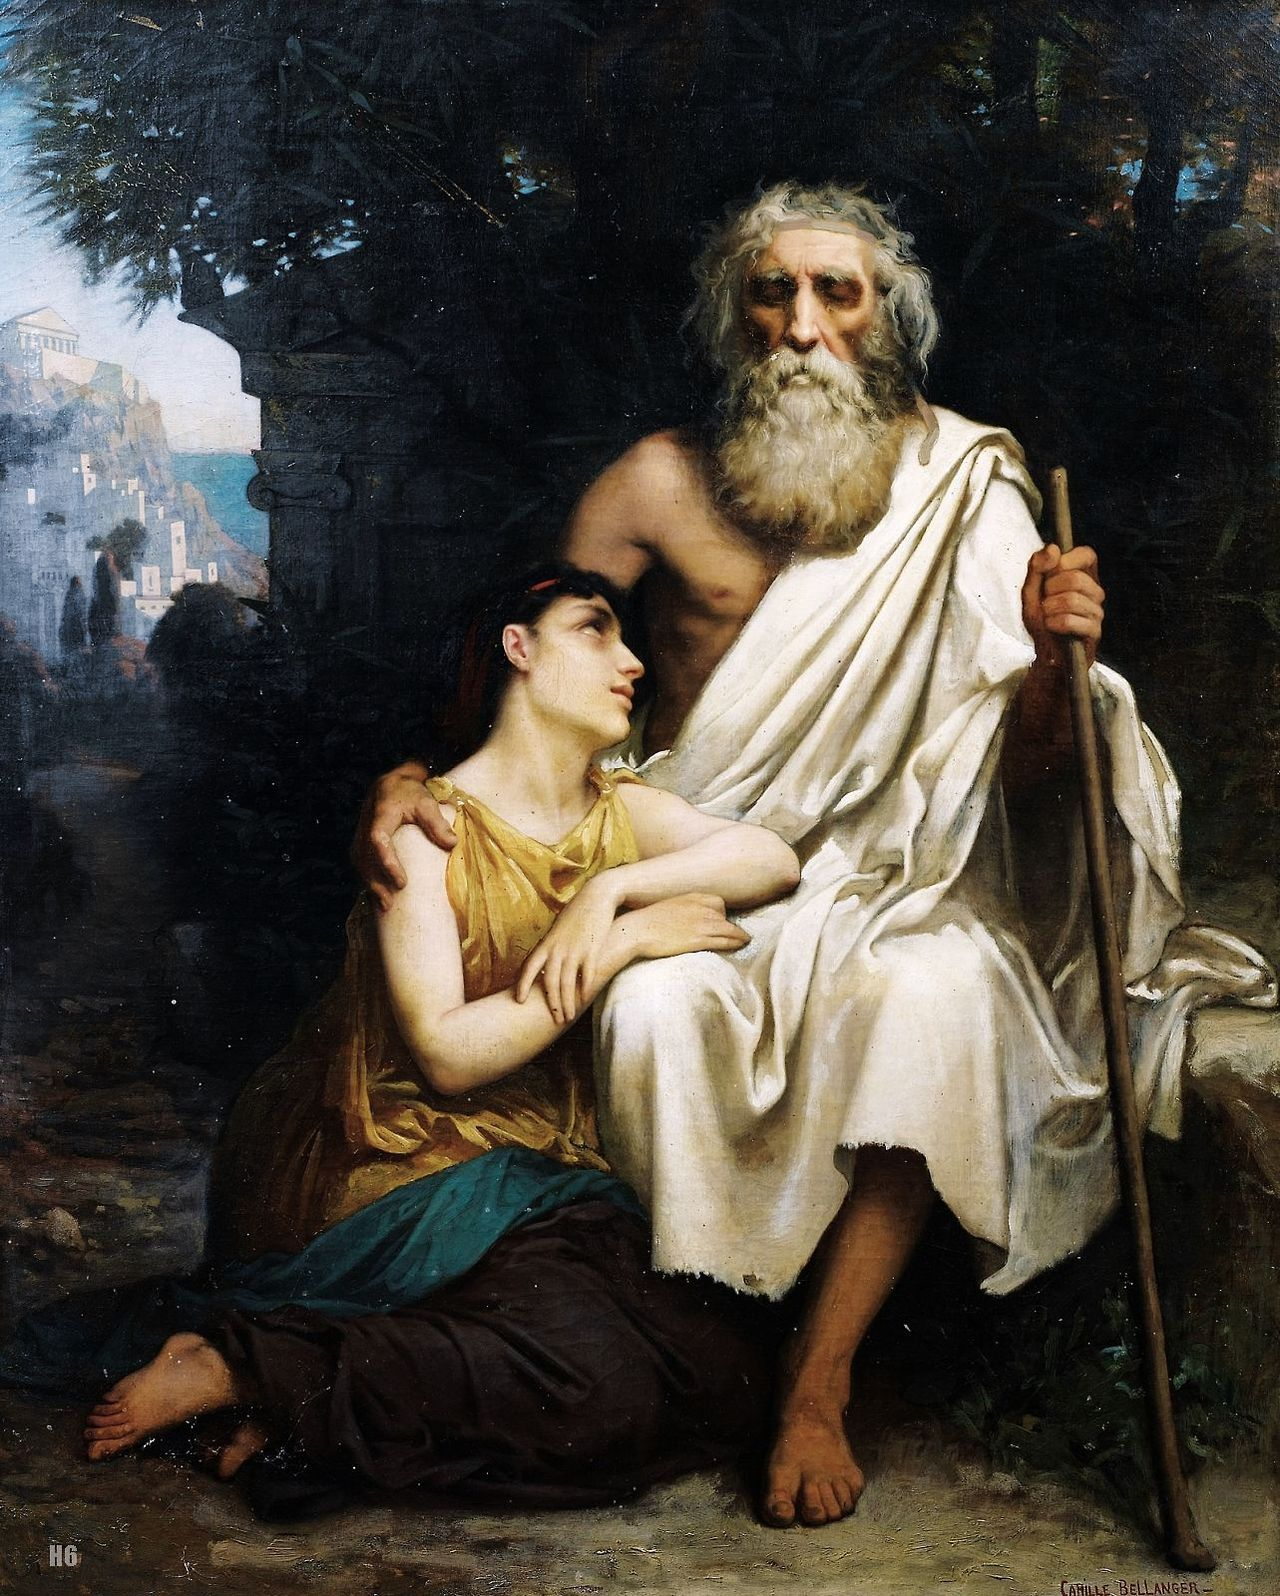 oedipus the king and allegory of Oedipus the king, sophocles' most famous play and one of literature's great tragedies, dramatizes oedipus' gradual discovery of a horrible truth -- he has fulfilled the prophecy that he will kill his father and marry his mother.